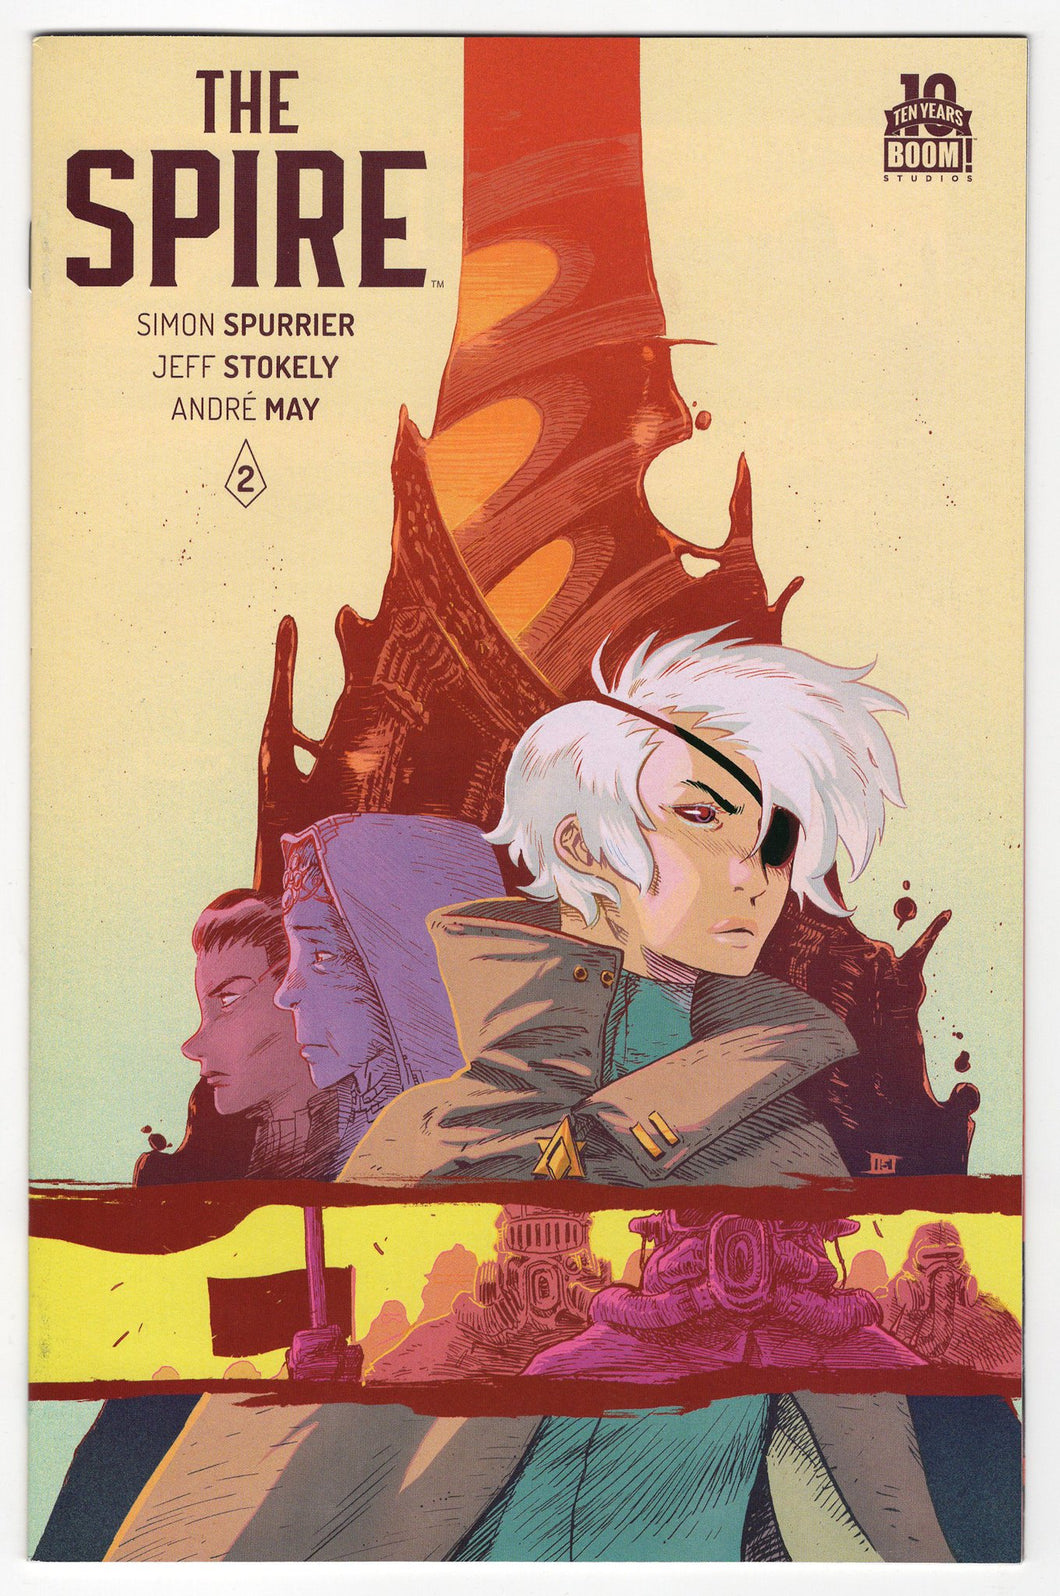 Spire #2 Cover Front